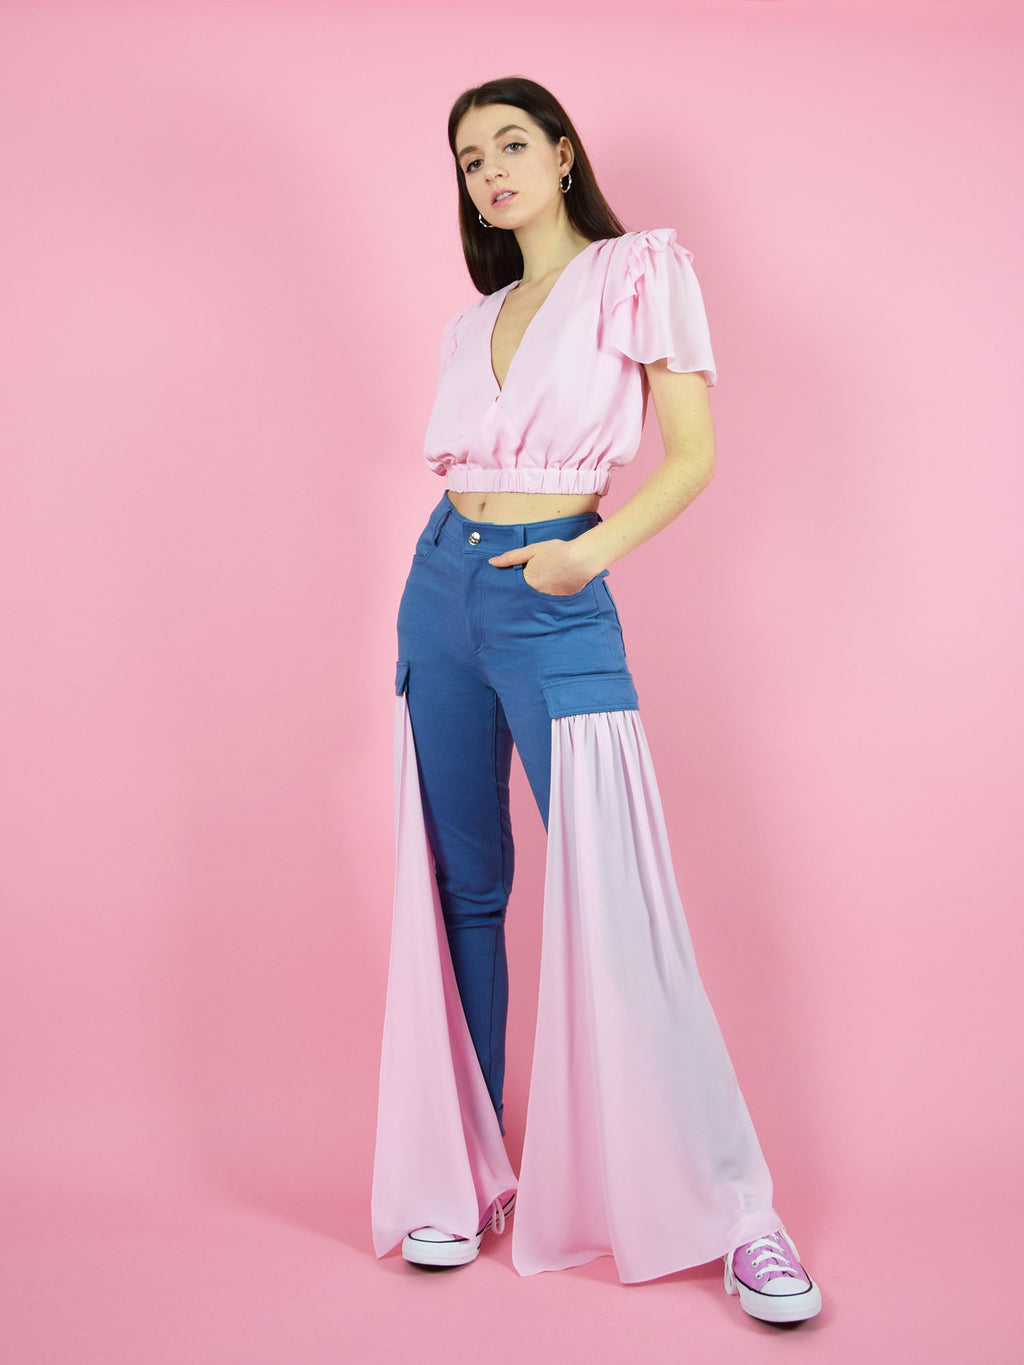 An amazing summer outfit by blonde gone rogue - the wildflower surplice crop top and the sustainable high-waisted skinny jeans with detachable veils on the side. They come in pink.